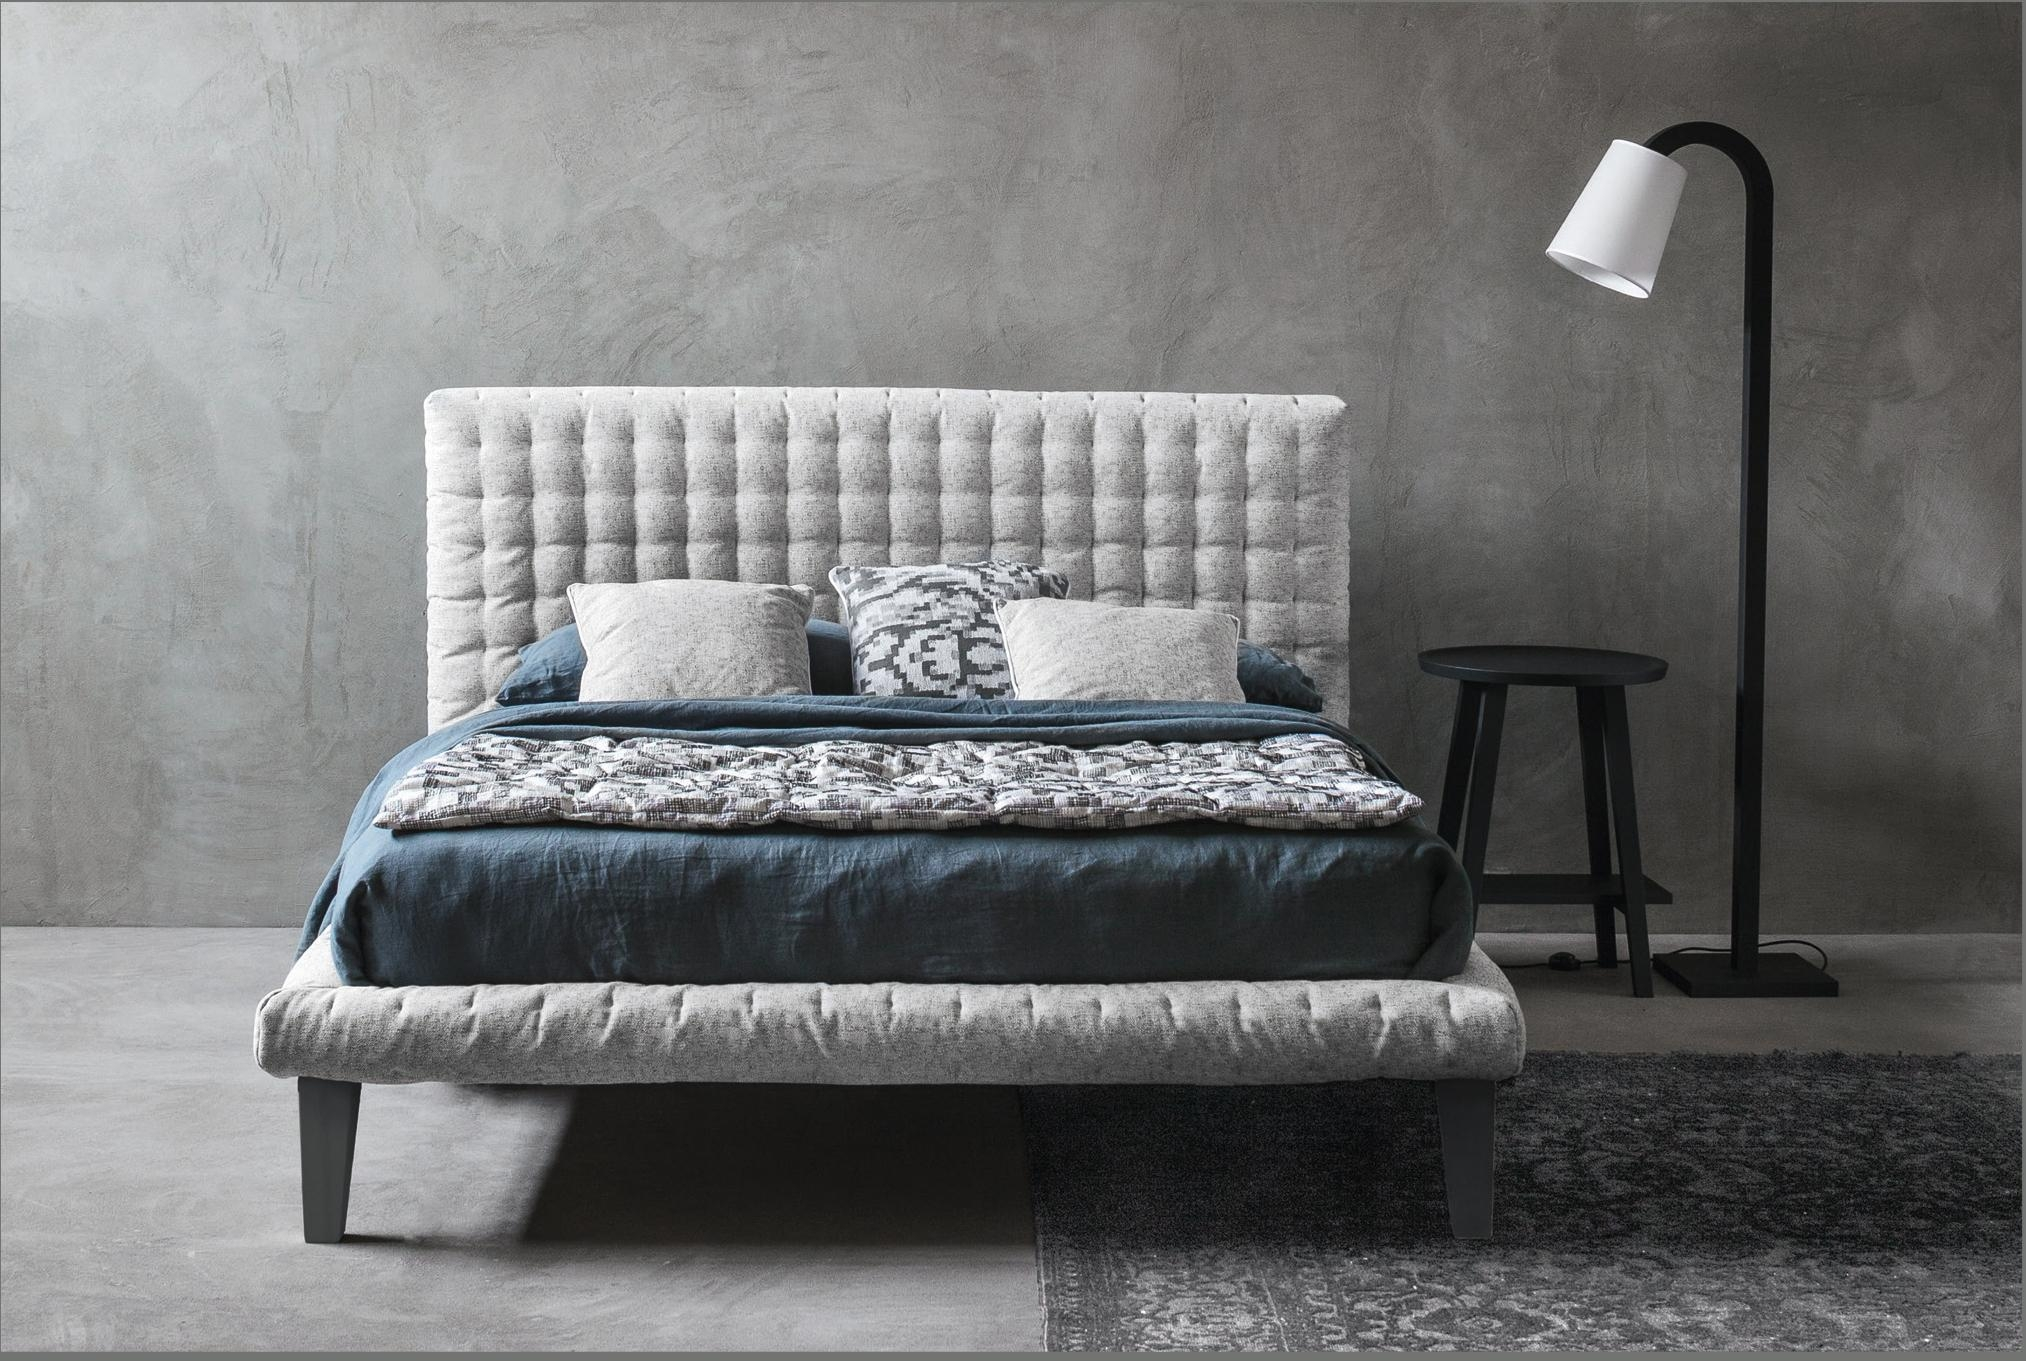 Charmantes Polsterbett. In vielen Stoffen. #bett #scandistyle #design Blue Wall Design